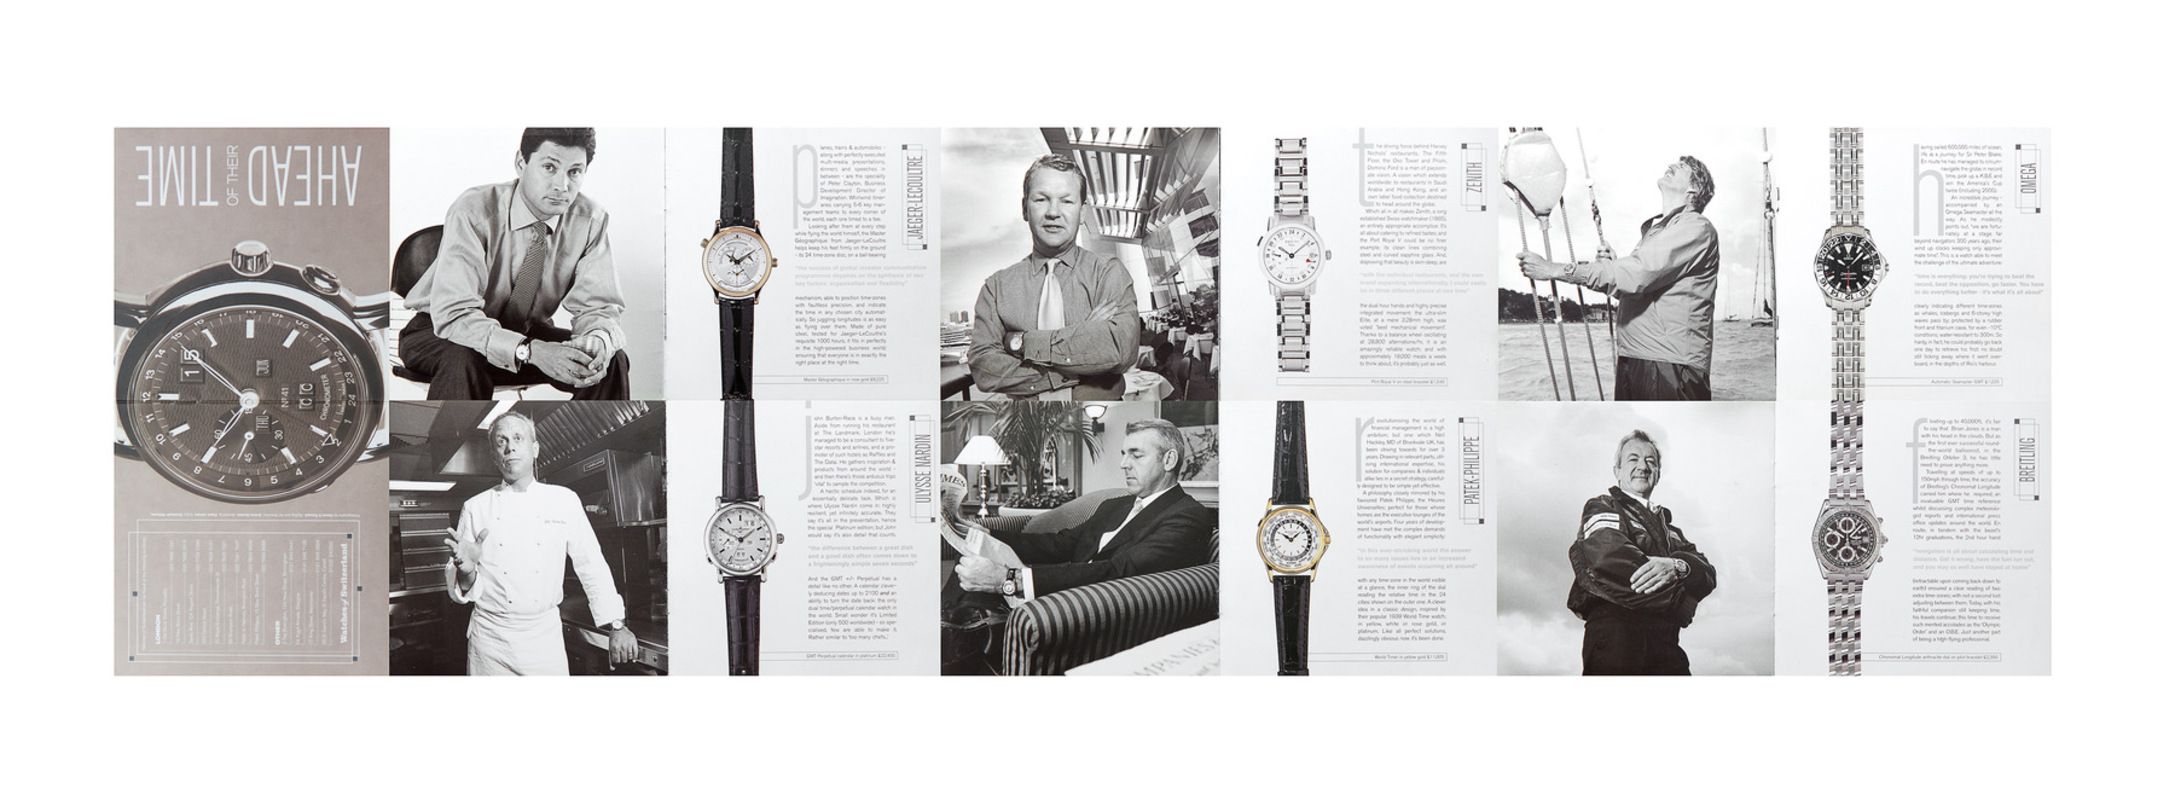 BASE STUDIOS - WATCHES OF SWITZERLAND - CONDE NAST TRAVELLER